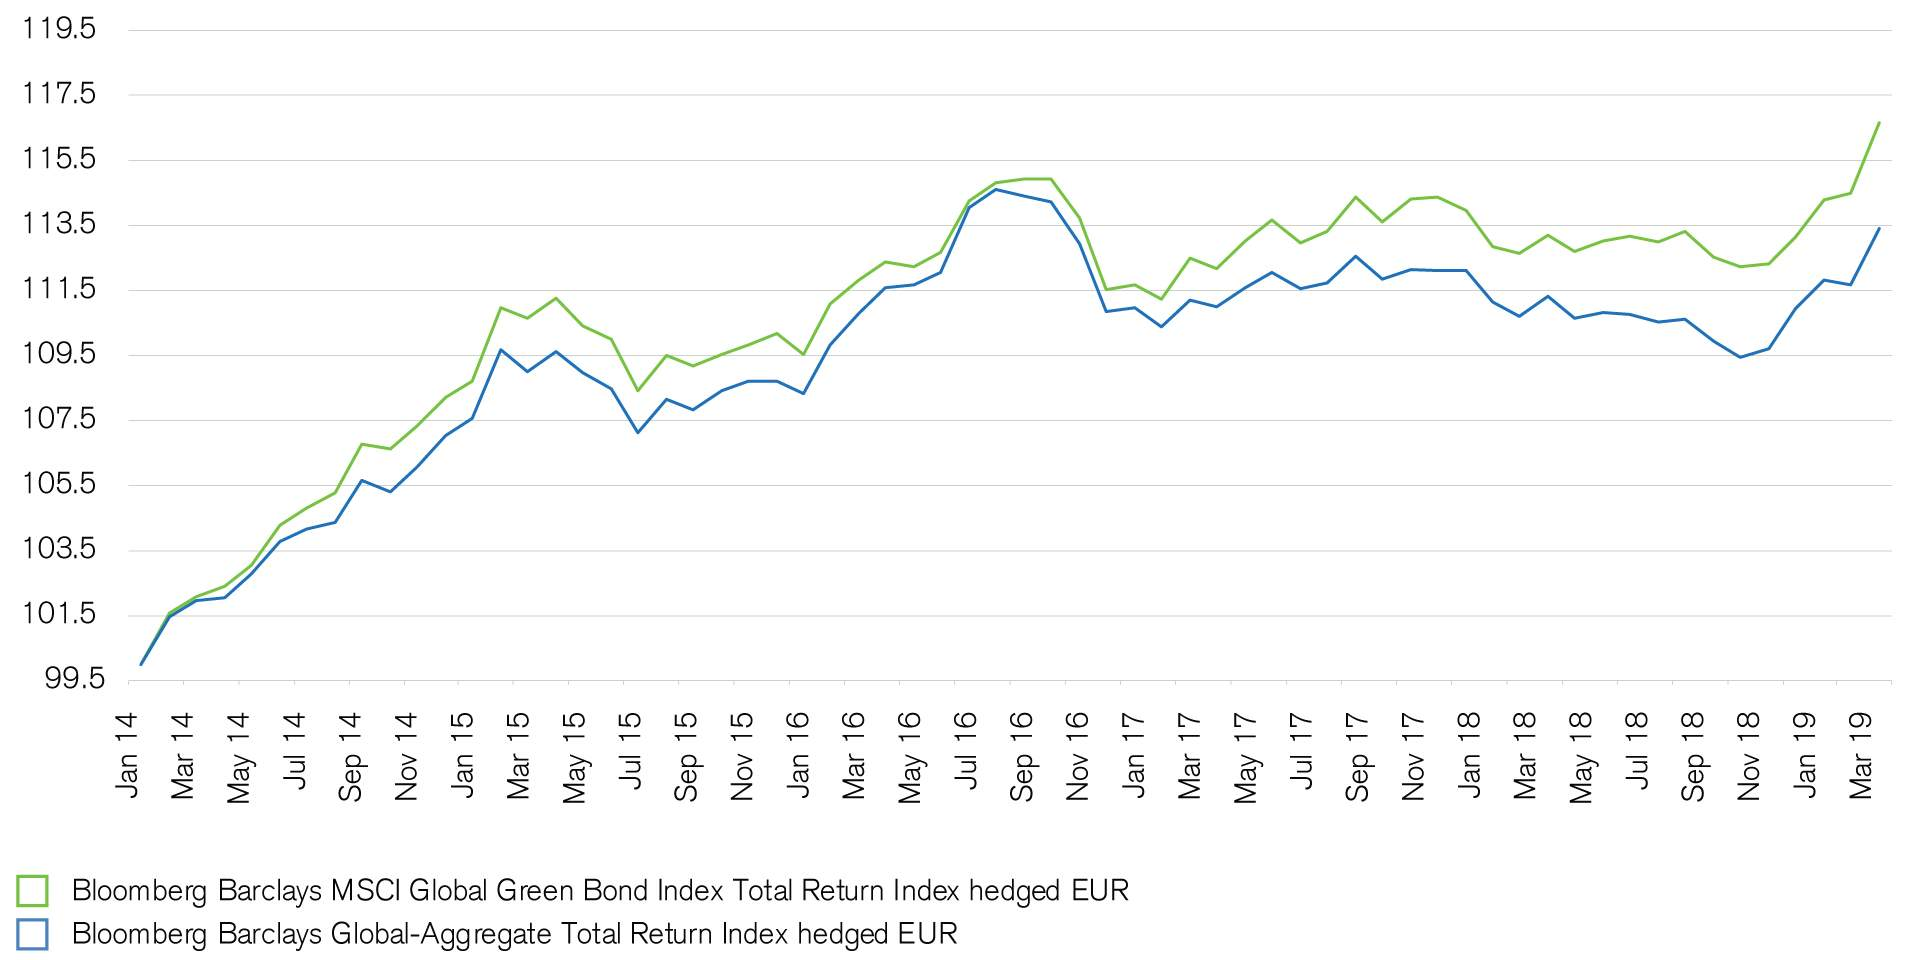 Performance of green bonds compared to standard bonds